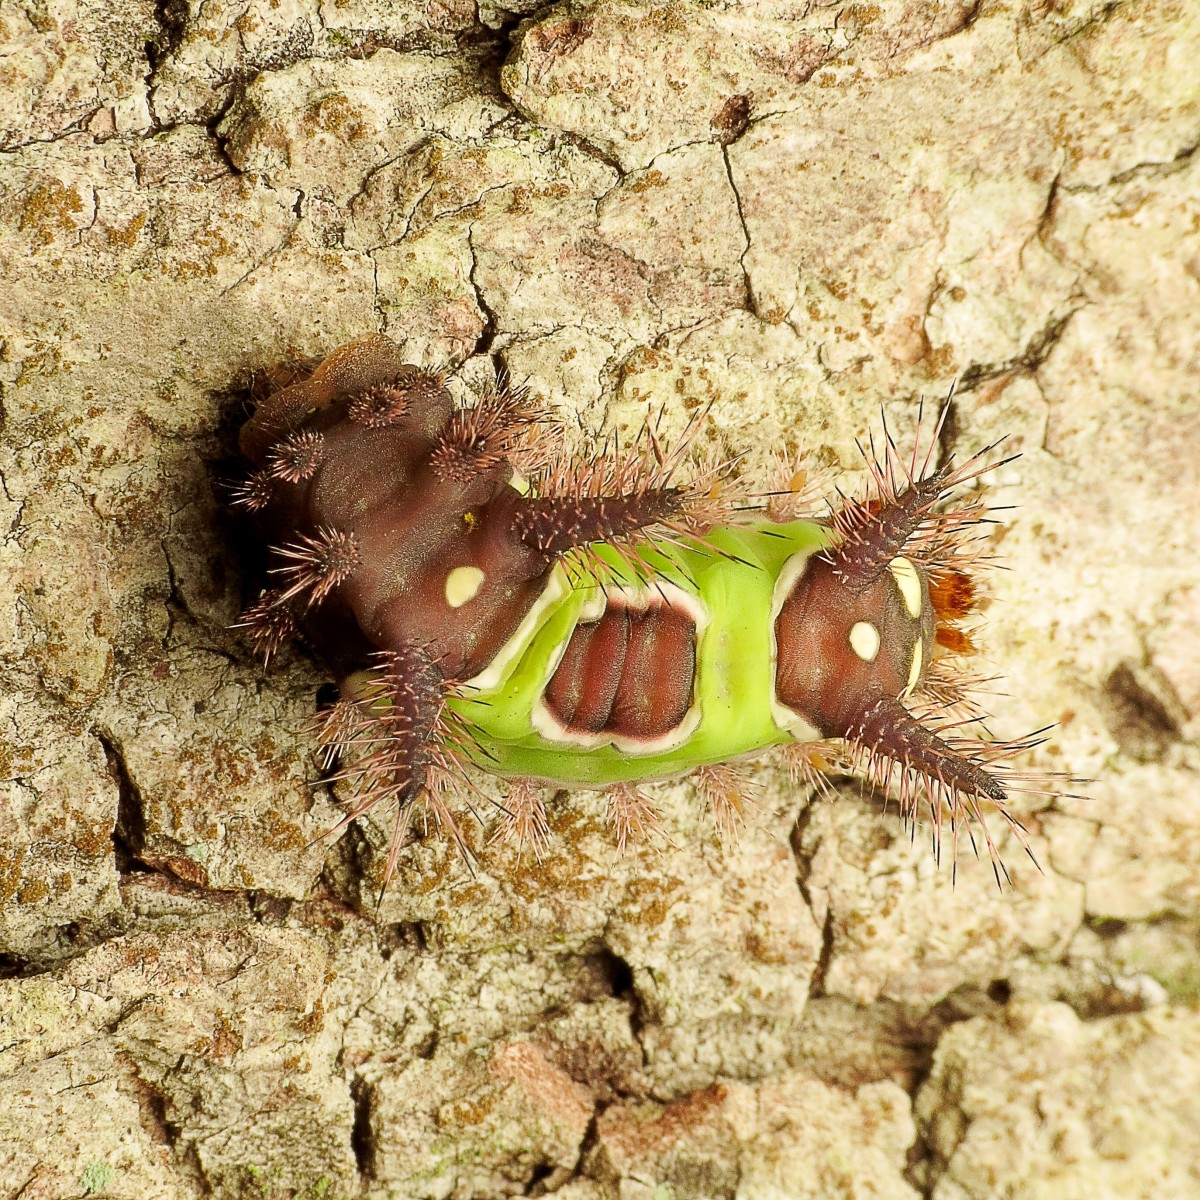 The large, pale yellow spots are located at the posterior end of a saddleback caterpillar.